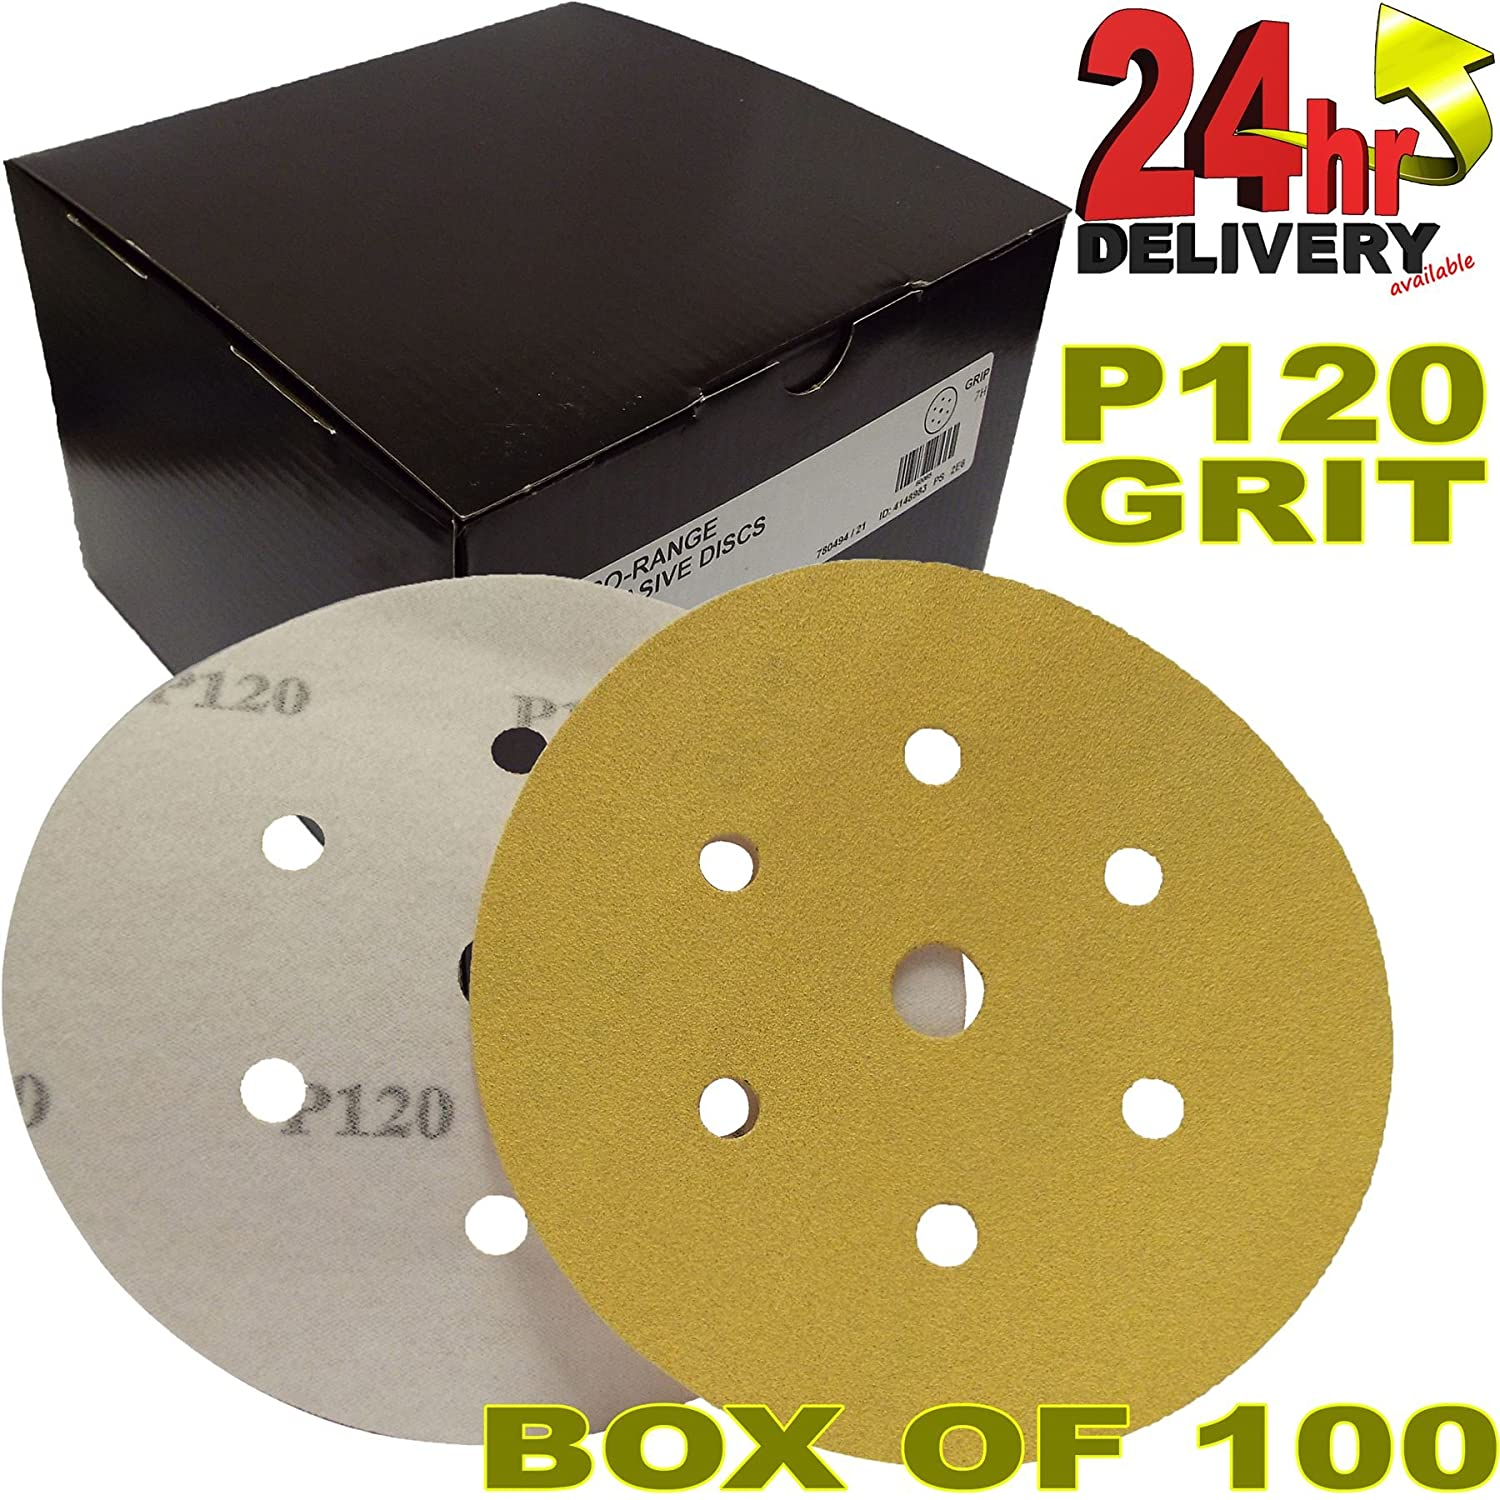 Pro Range Gold 2362819932UK Plain Boxed HookNLoop HookIt DA 6 150mm Pack of 100 6+1 Hole Dust Extraction System Electric//Air Sanders Box of 100 Discs Sanding Discs P320 Grit